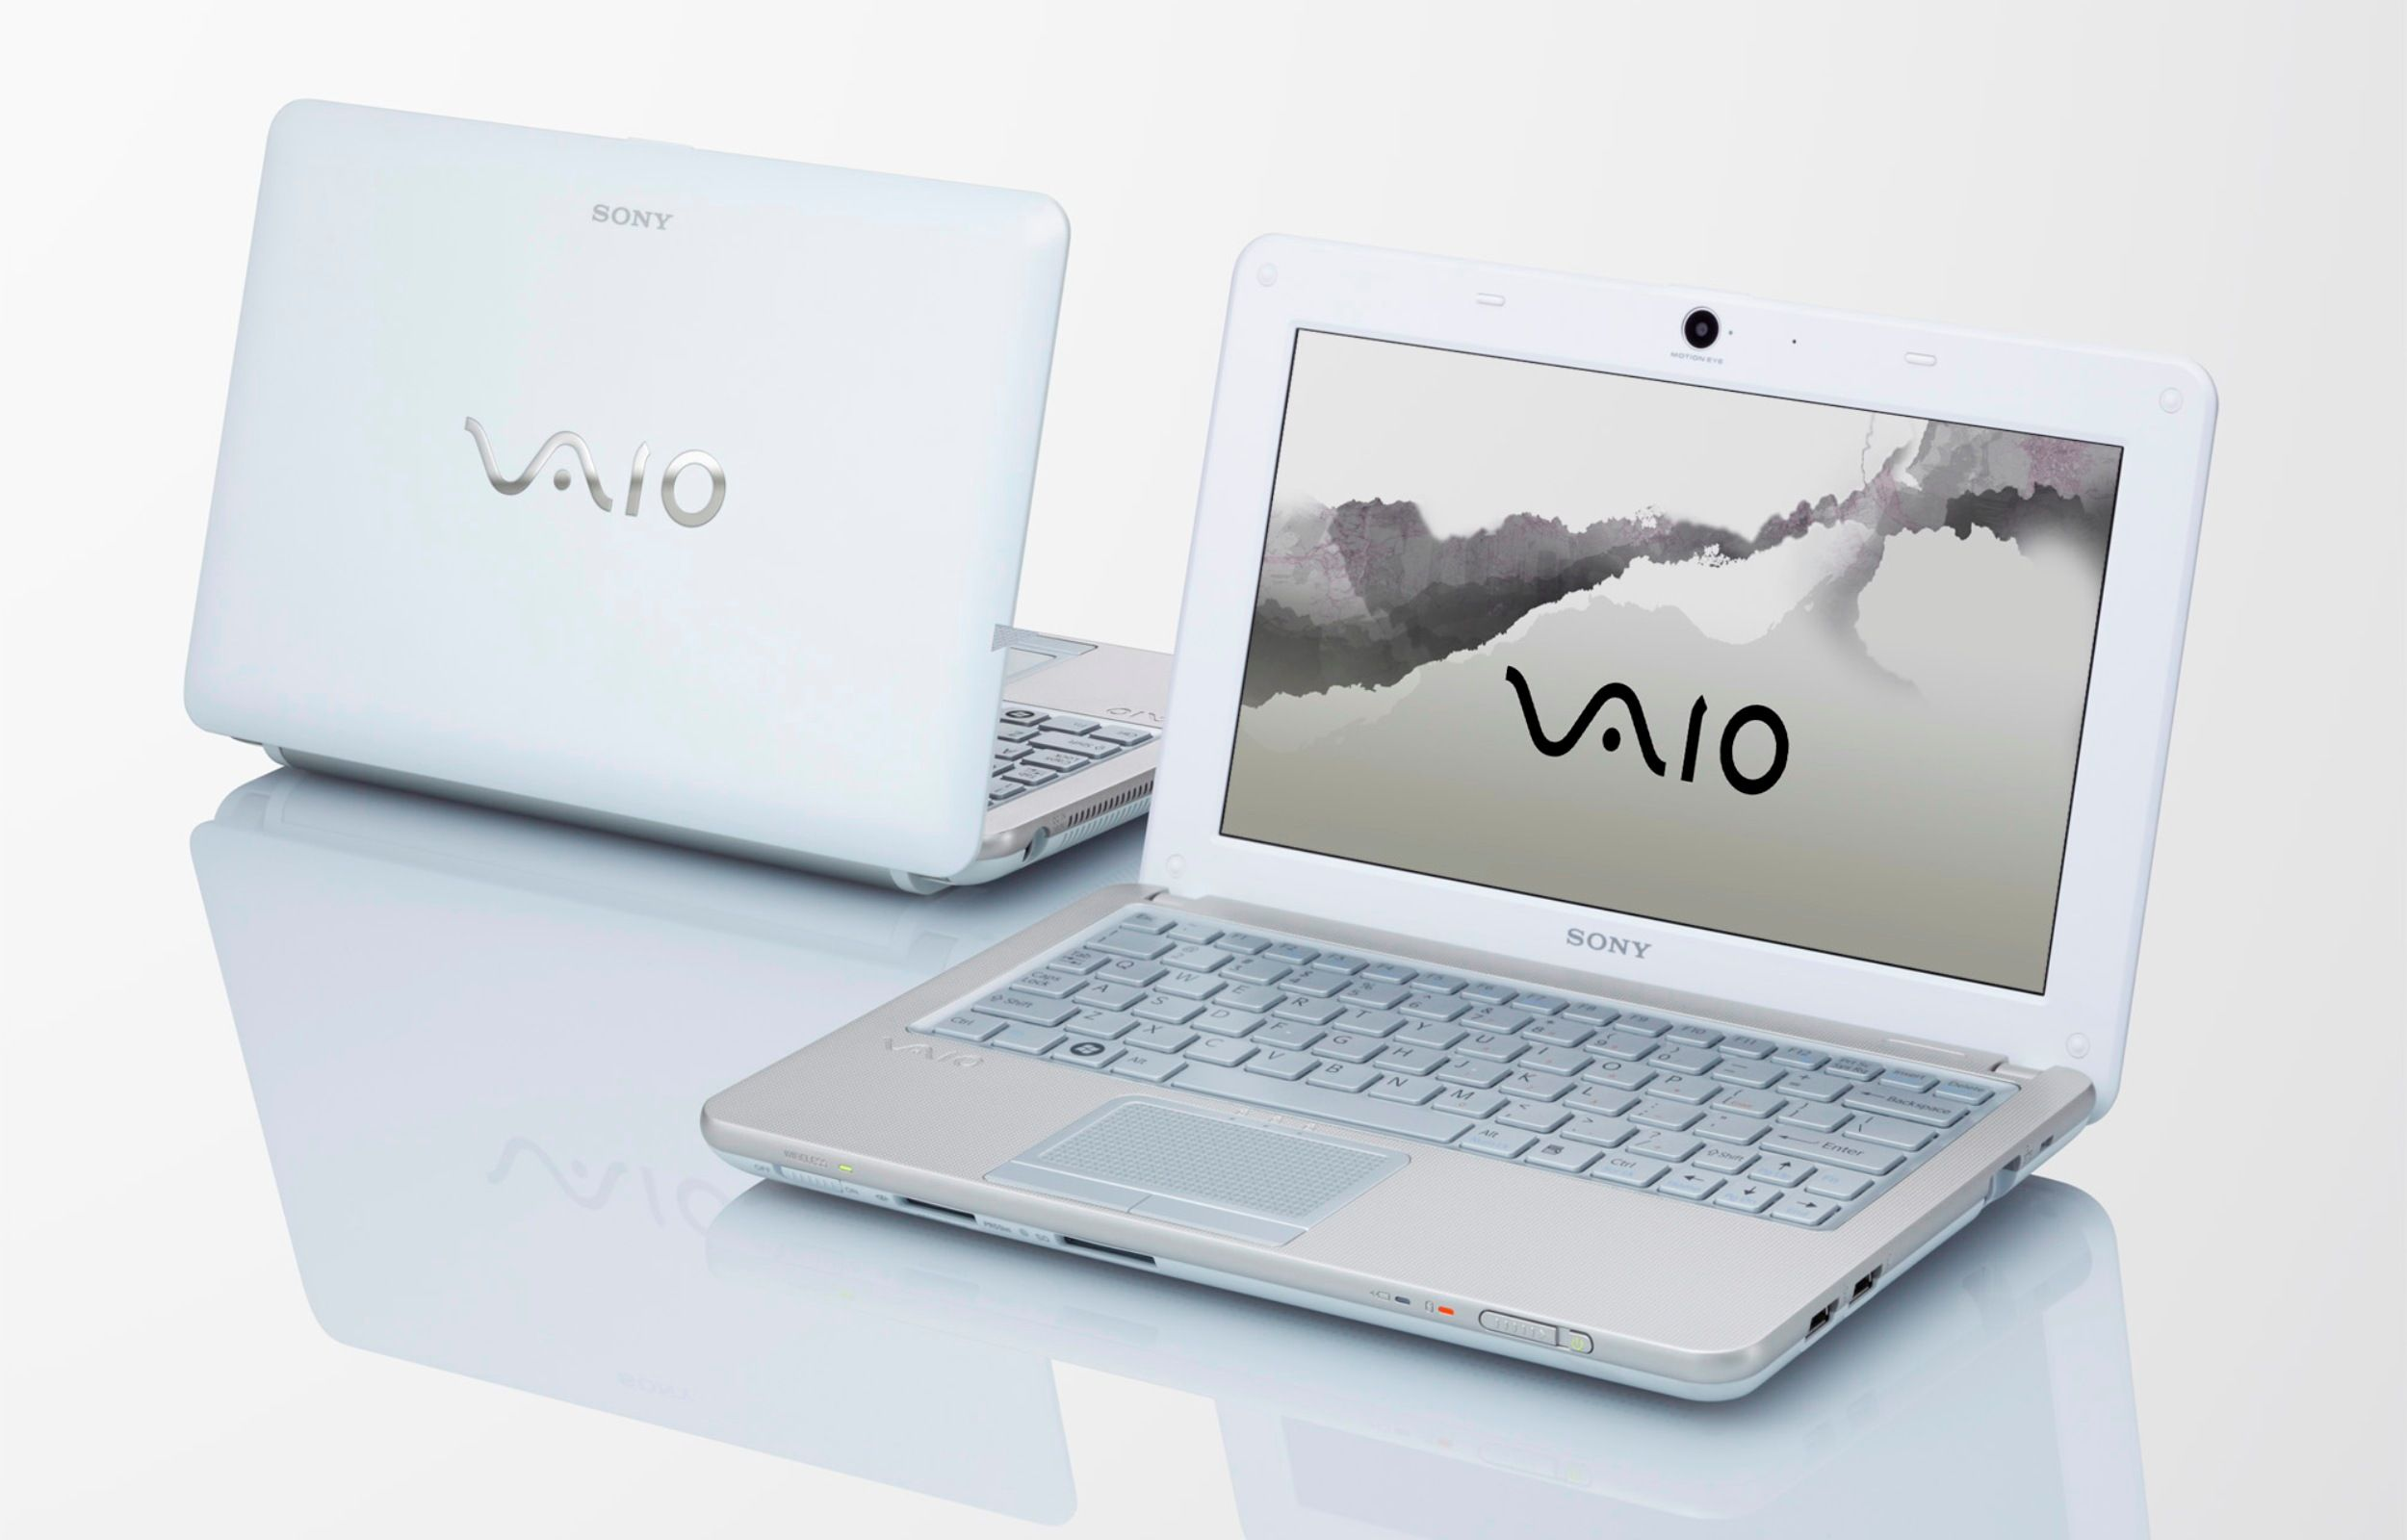 Sony vaio t13 review 2 alphr - Nice Sony Vaio E White Uhd Wallpapers